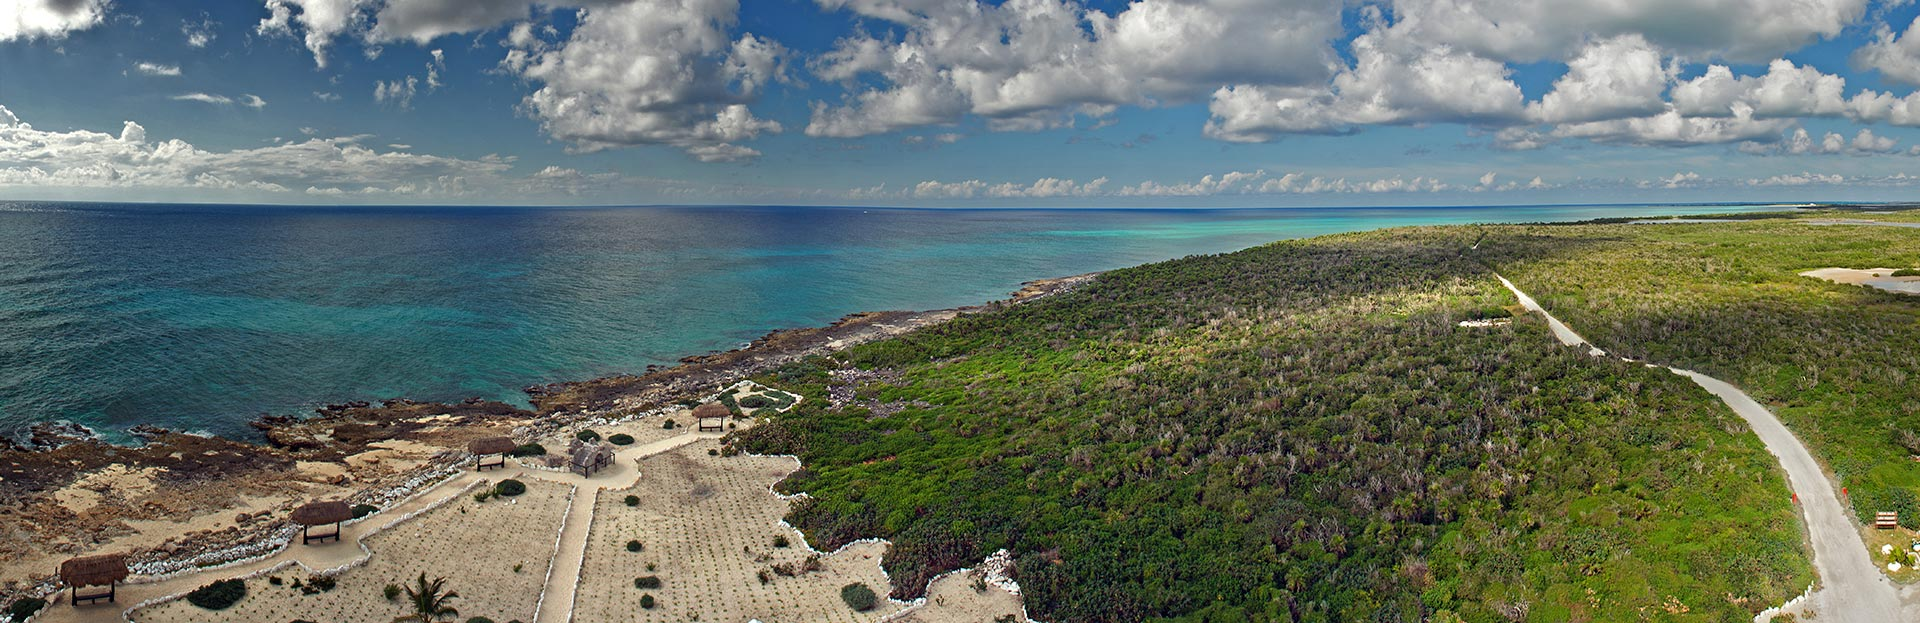 Cozumel Panoramic